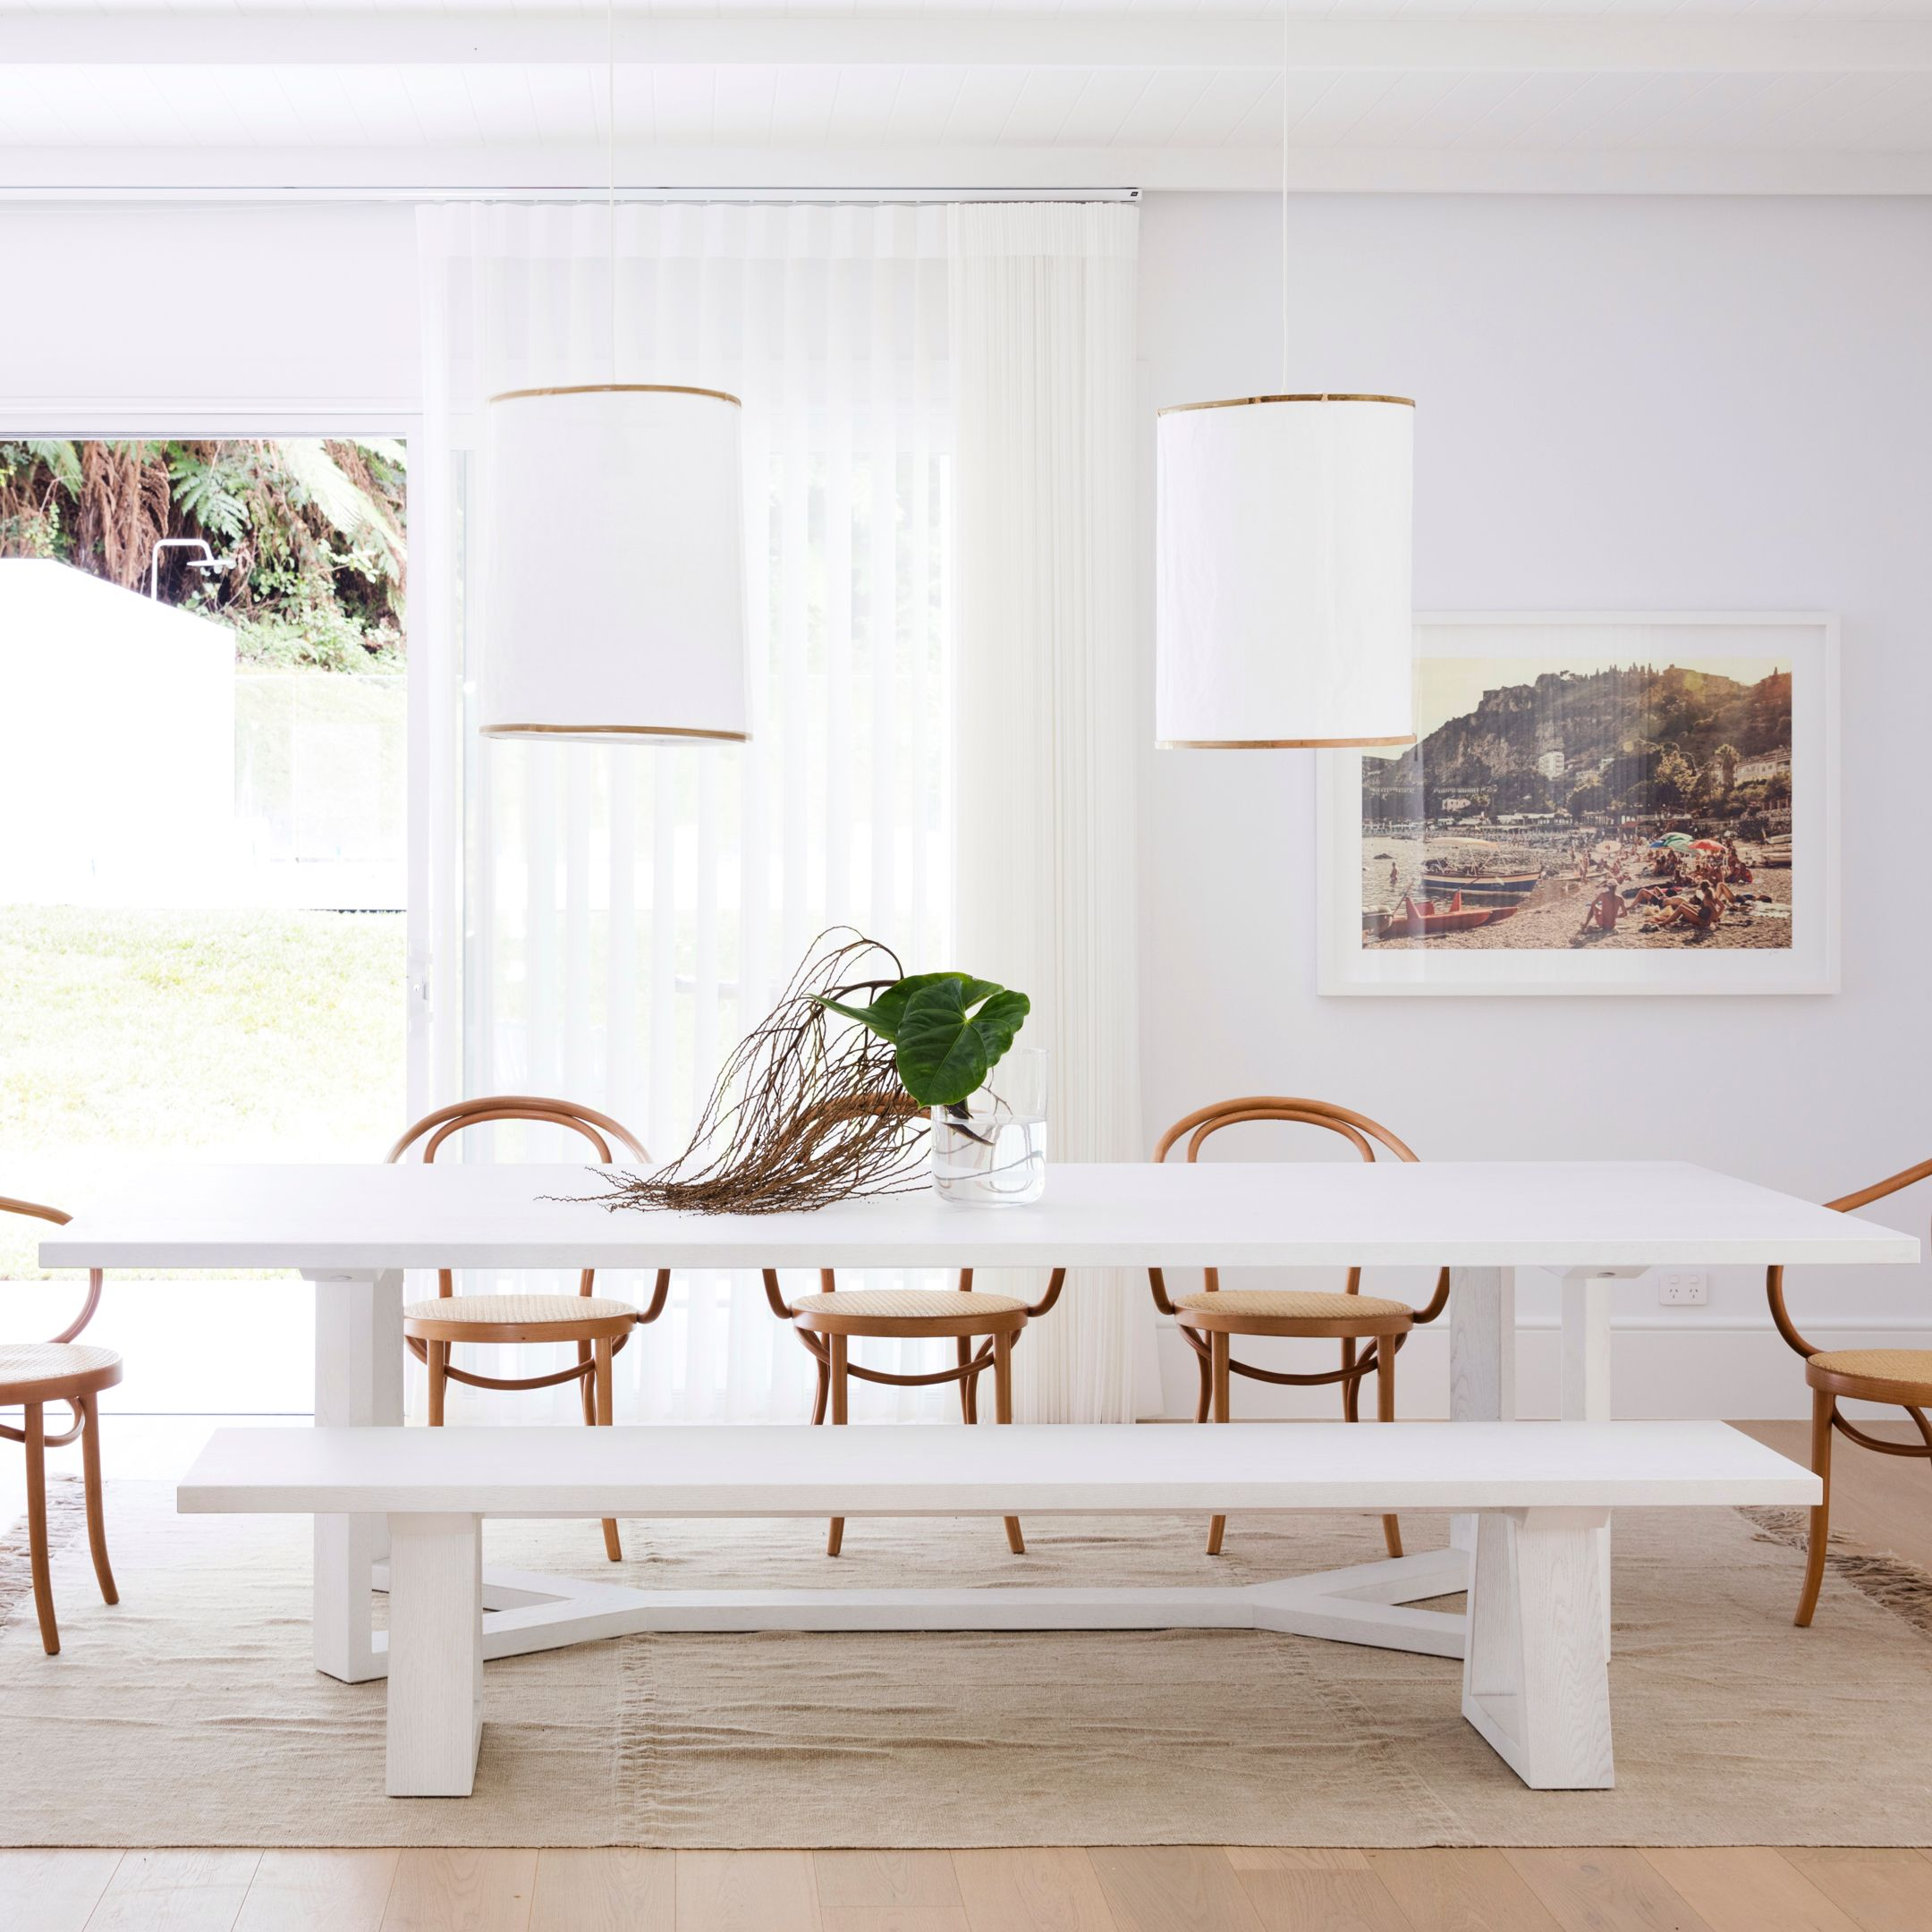 Dining table—House 10.